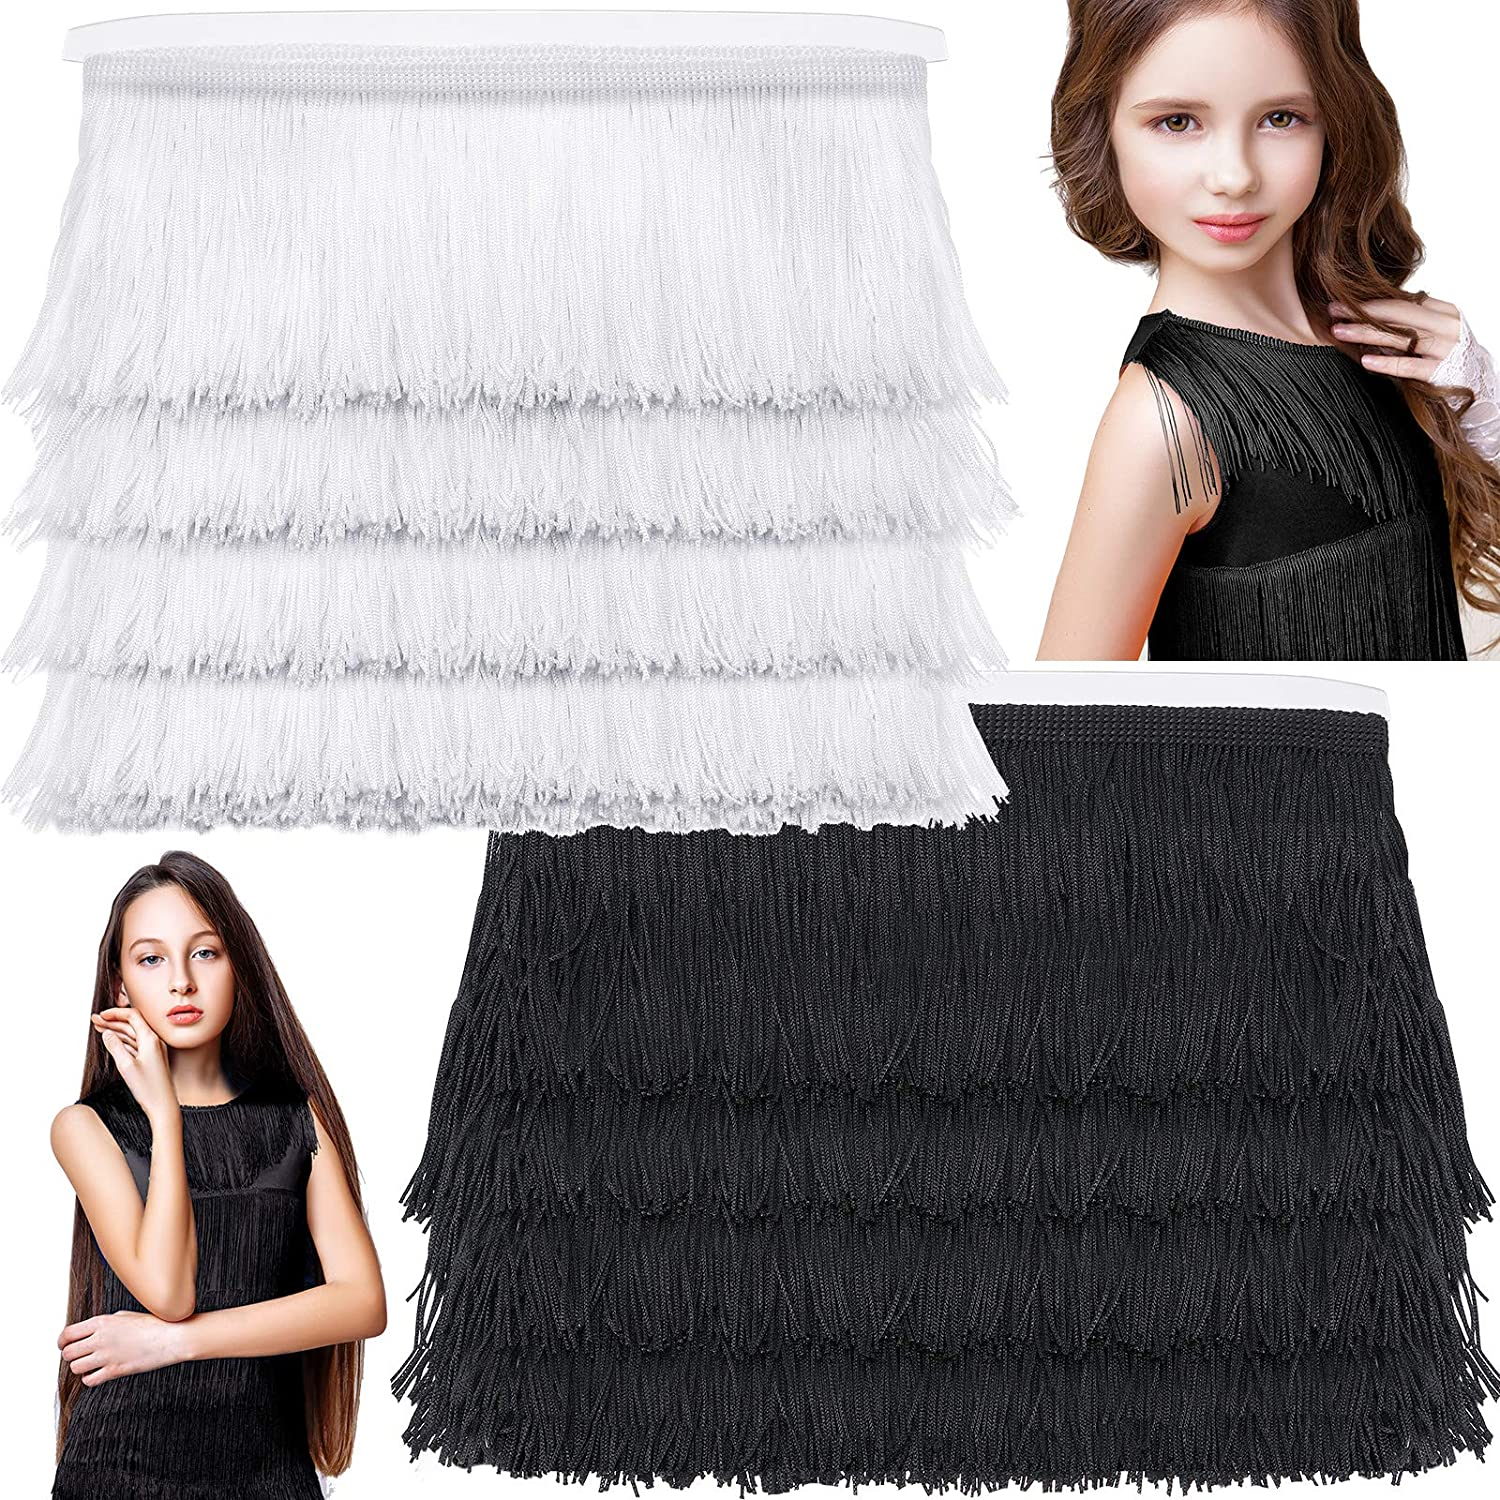 2 Pieces Long Fringe Trim Lace Polyester Fibre Tassel Trim 3.5 Inch Wide 10.4 Yards Long for DIY Sewing Edging Trimming Latin Wedding Dress Stage Clothes Curtain Blanket Hanging Rugs Home Decor